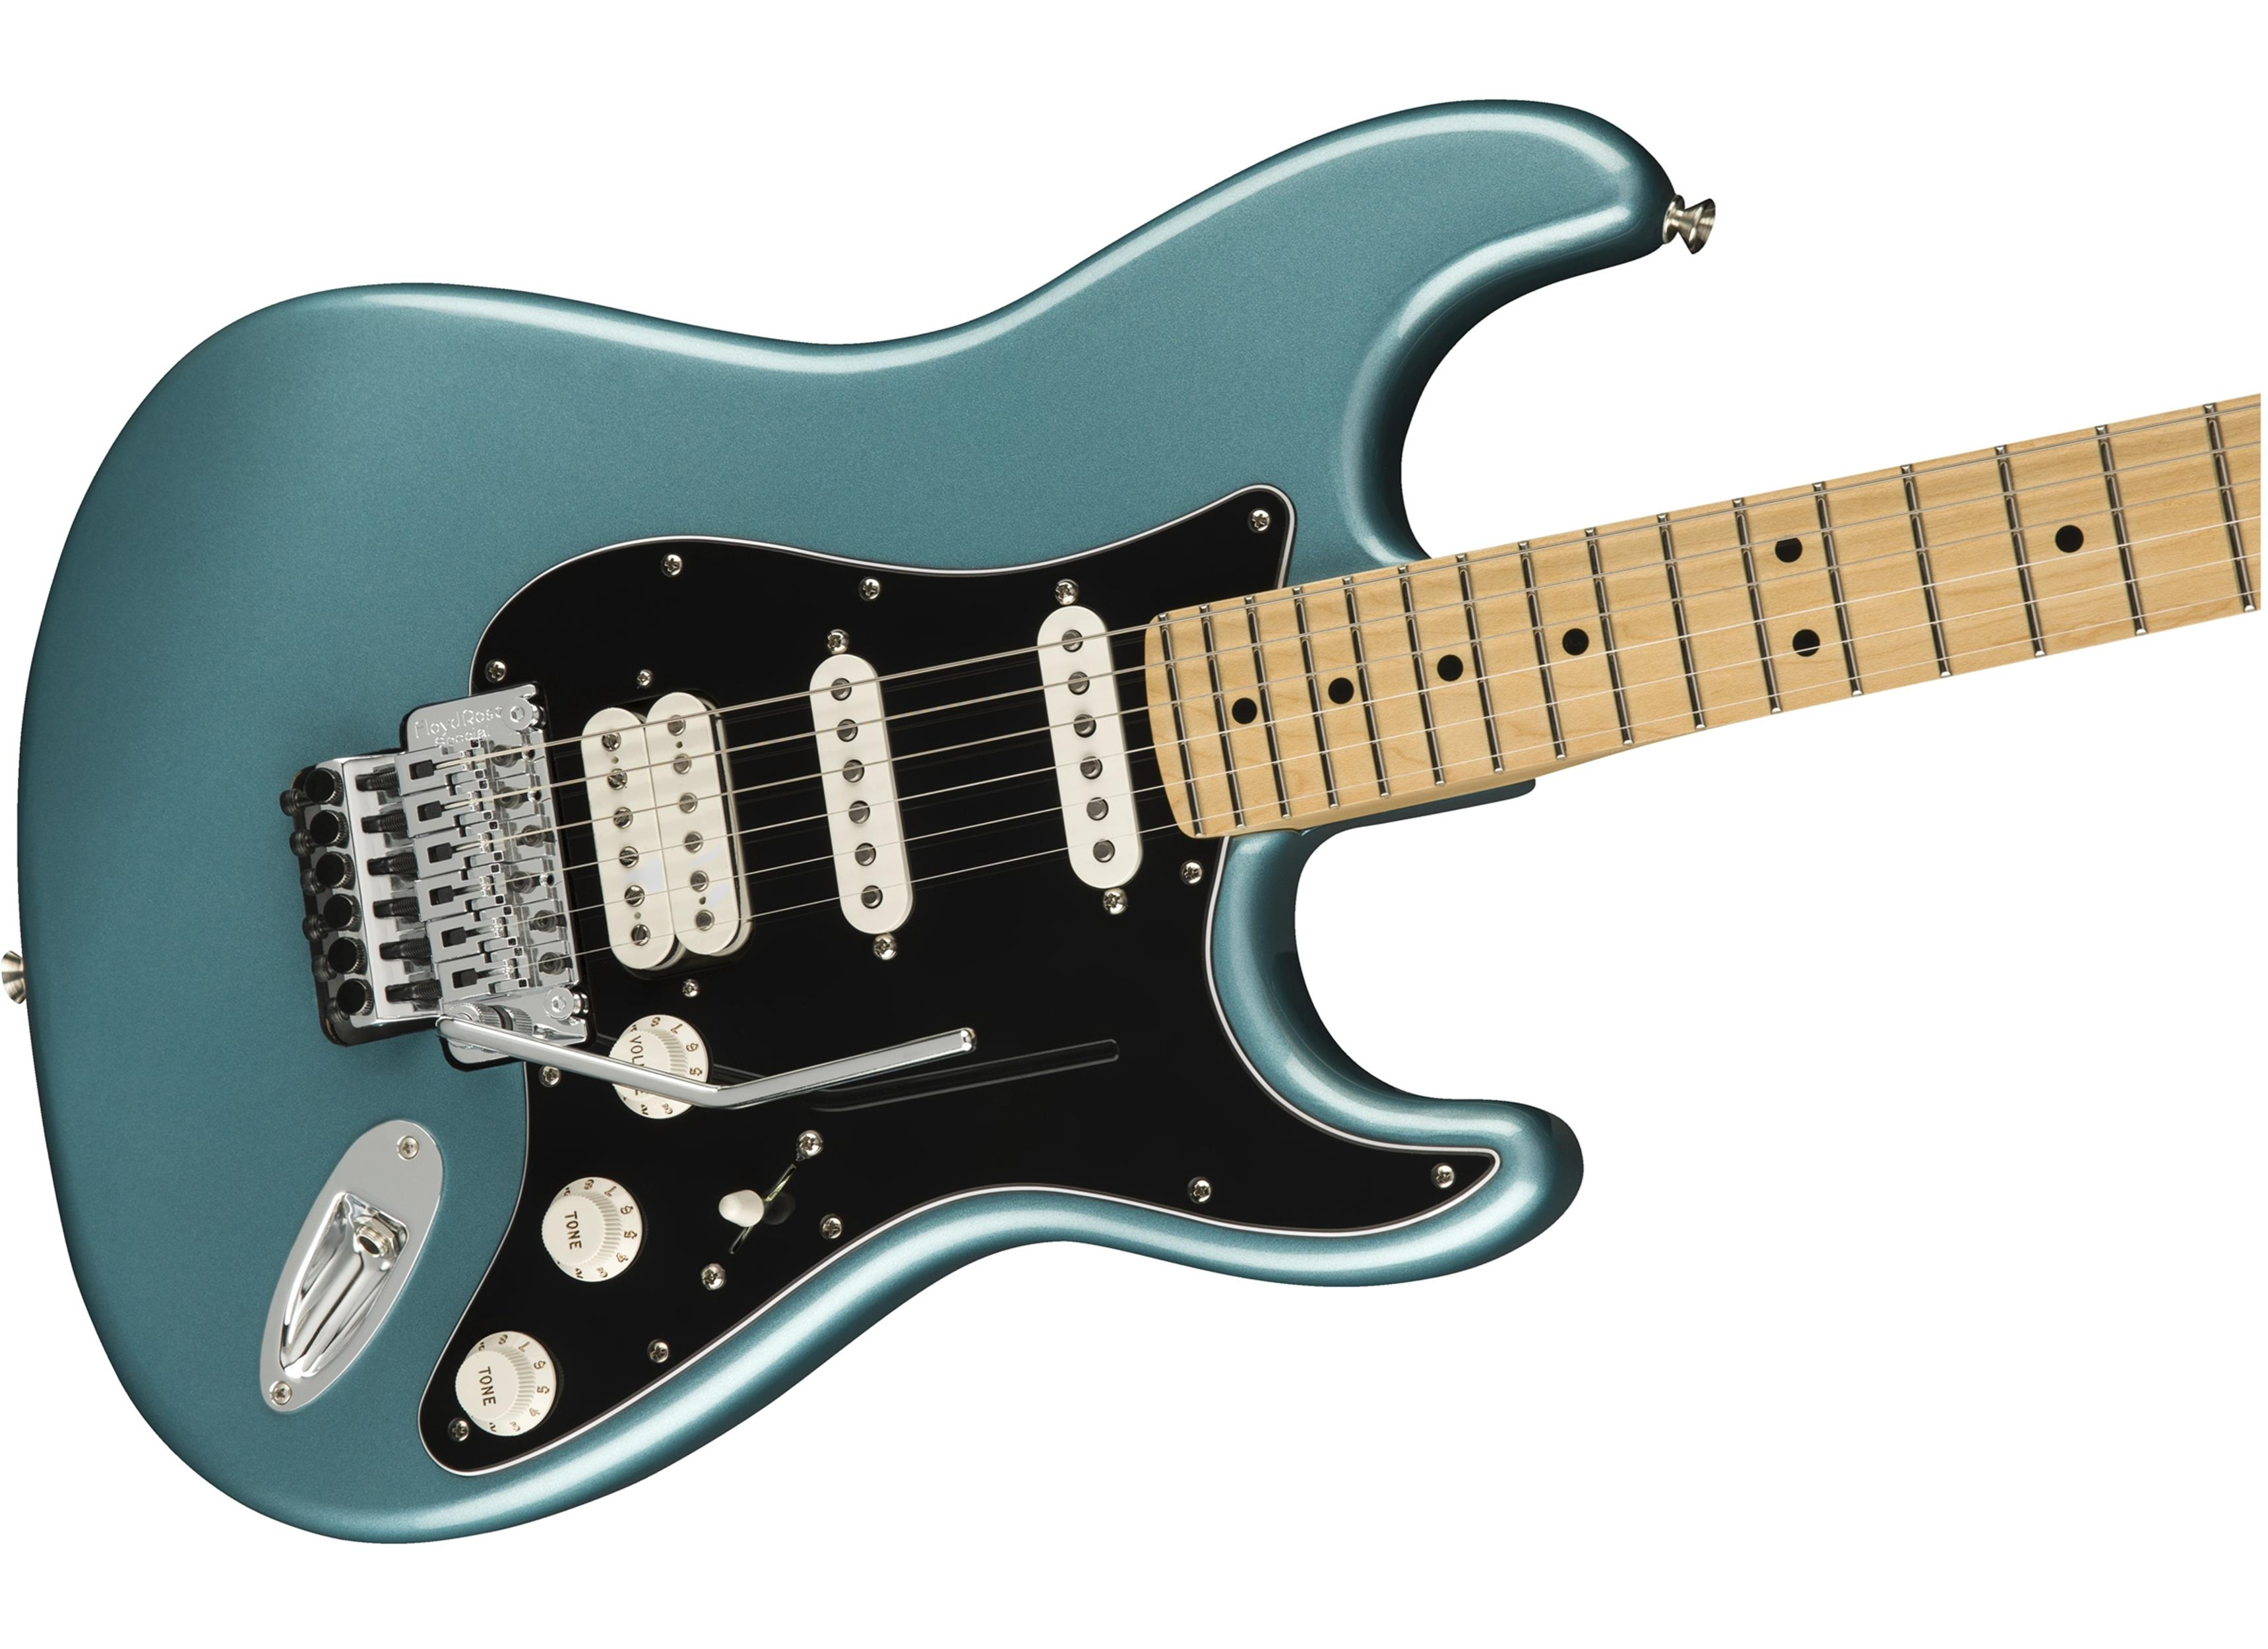 FENDER Player Stratocaster Floyd Rose MN Tidepool 1149402513 - Chitarre Chitarre - Elettriche